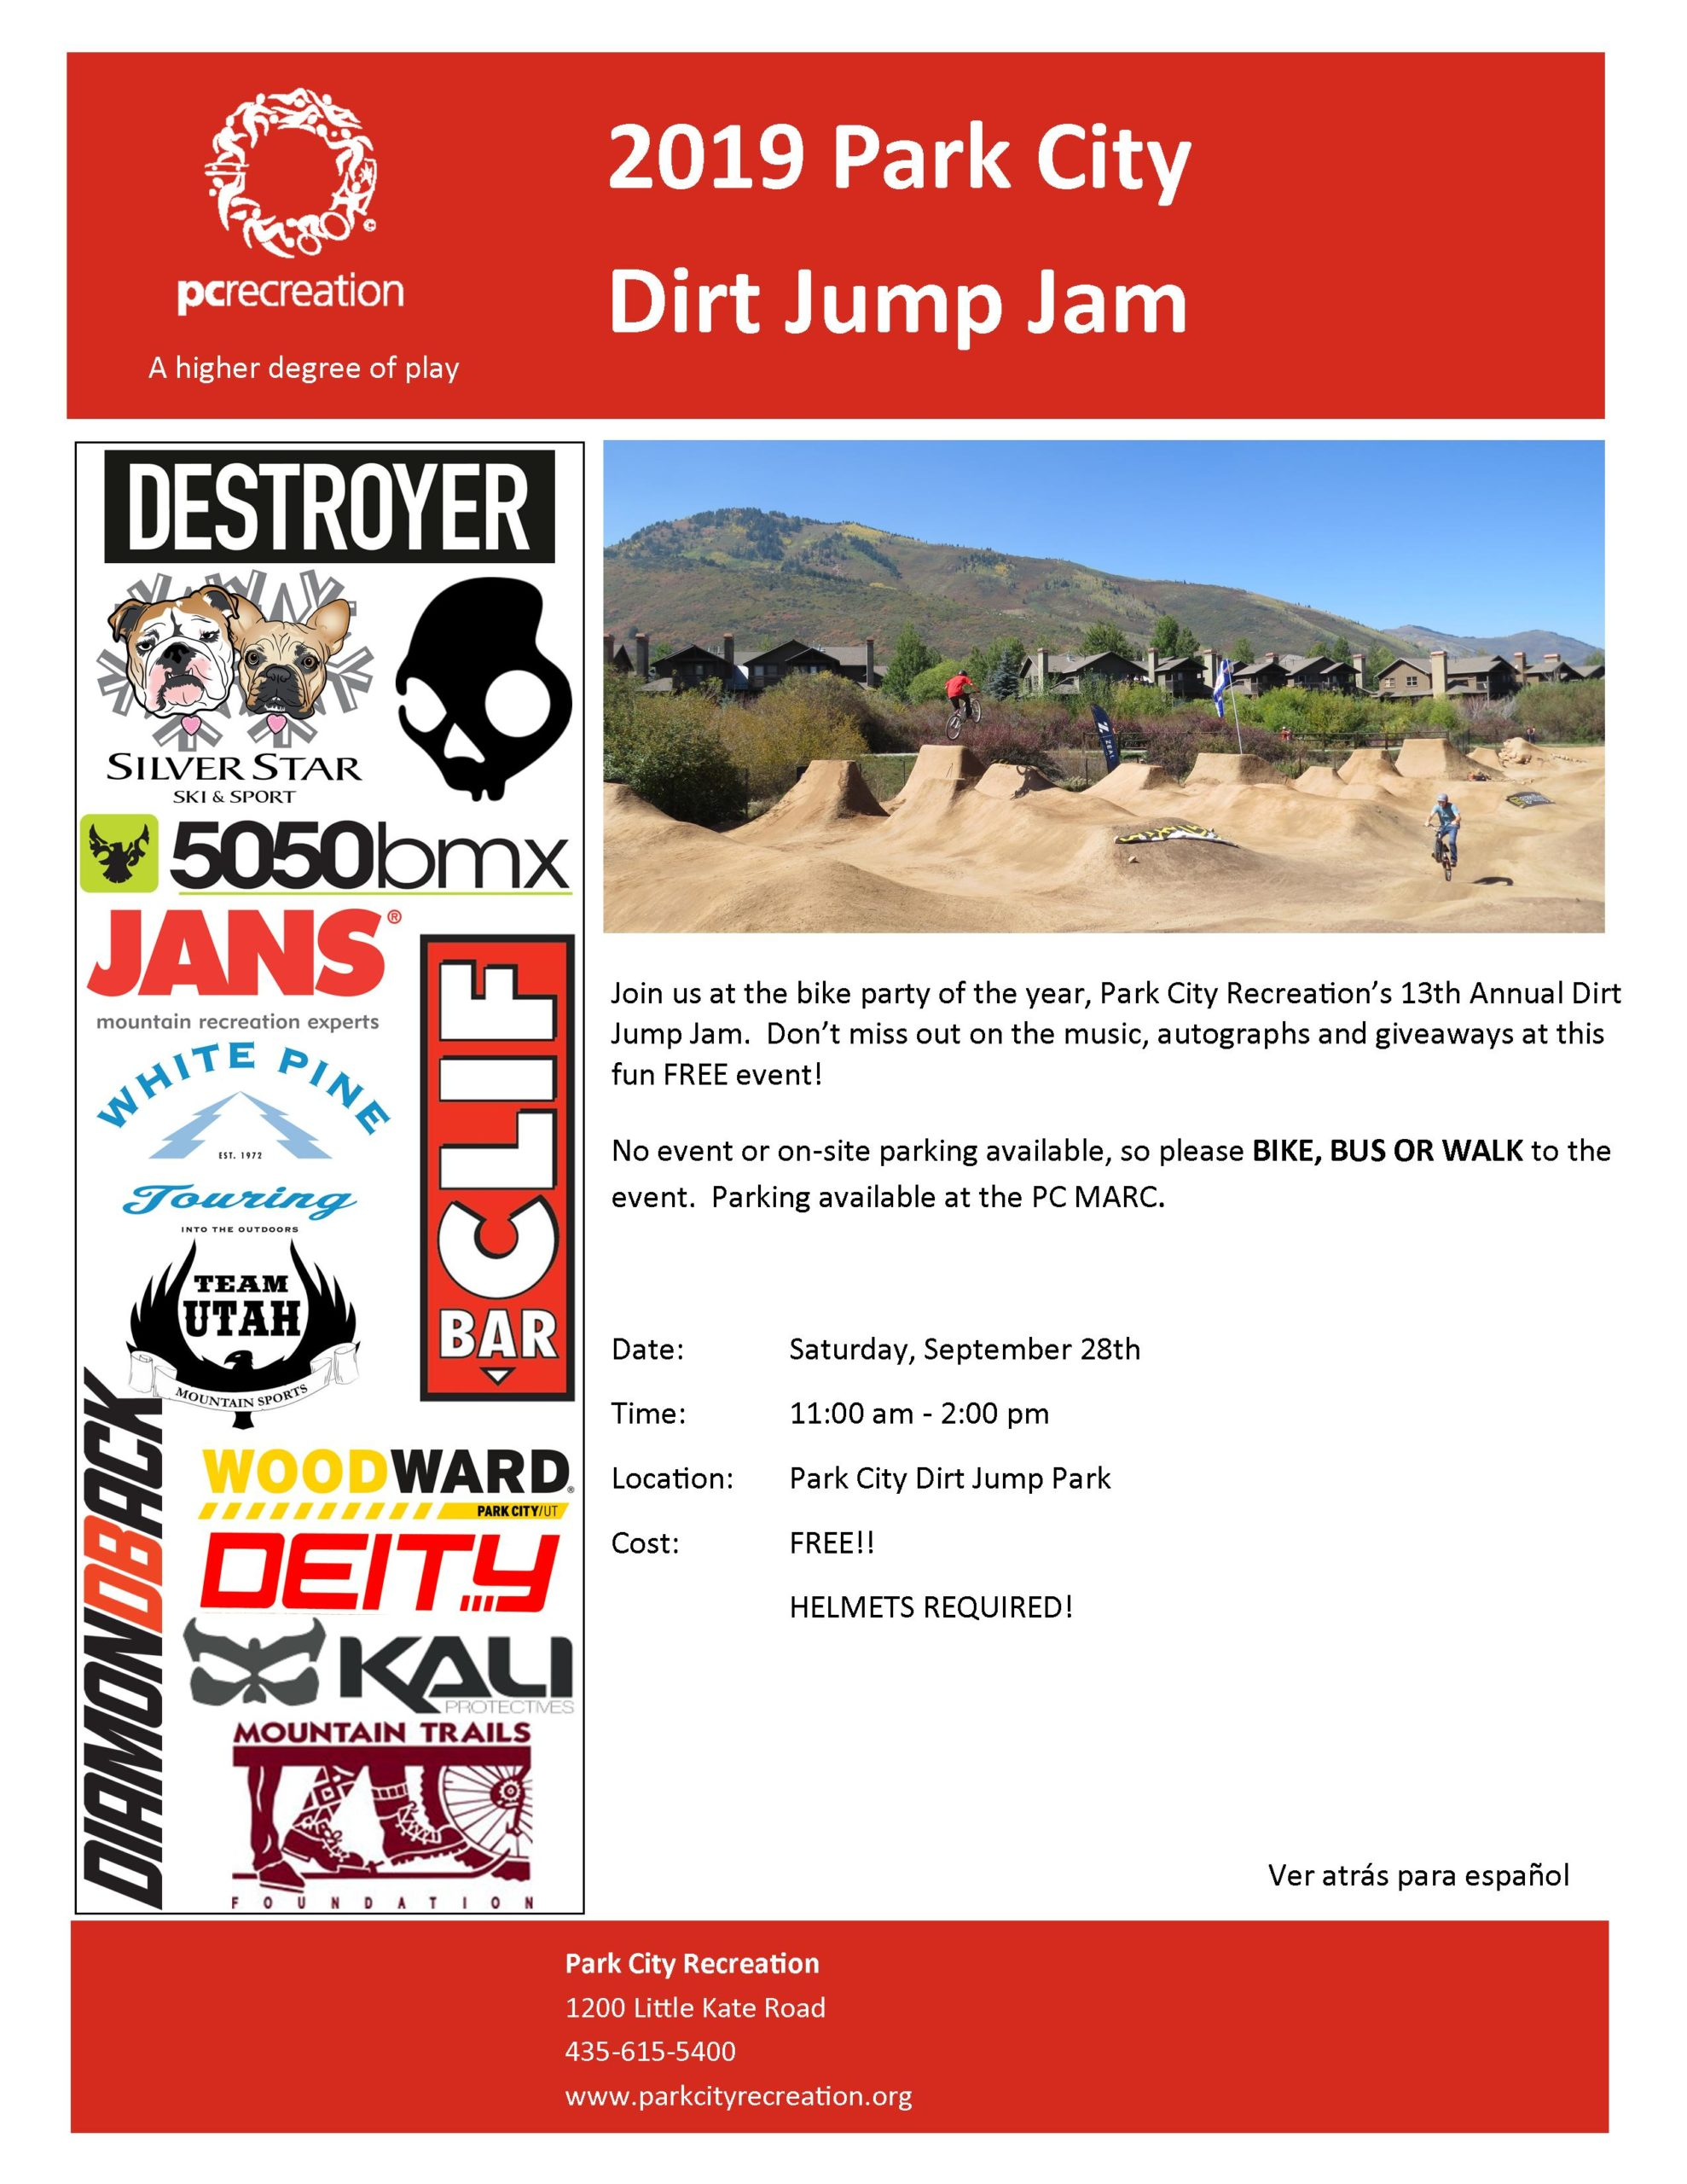 Dirt-Jump-Jam-2019-park-city-recreation